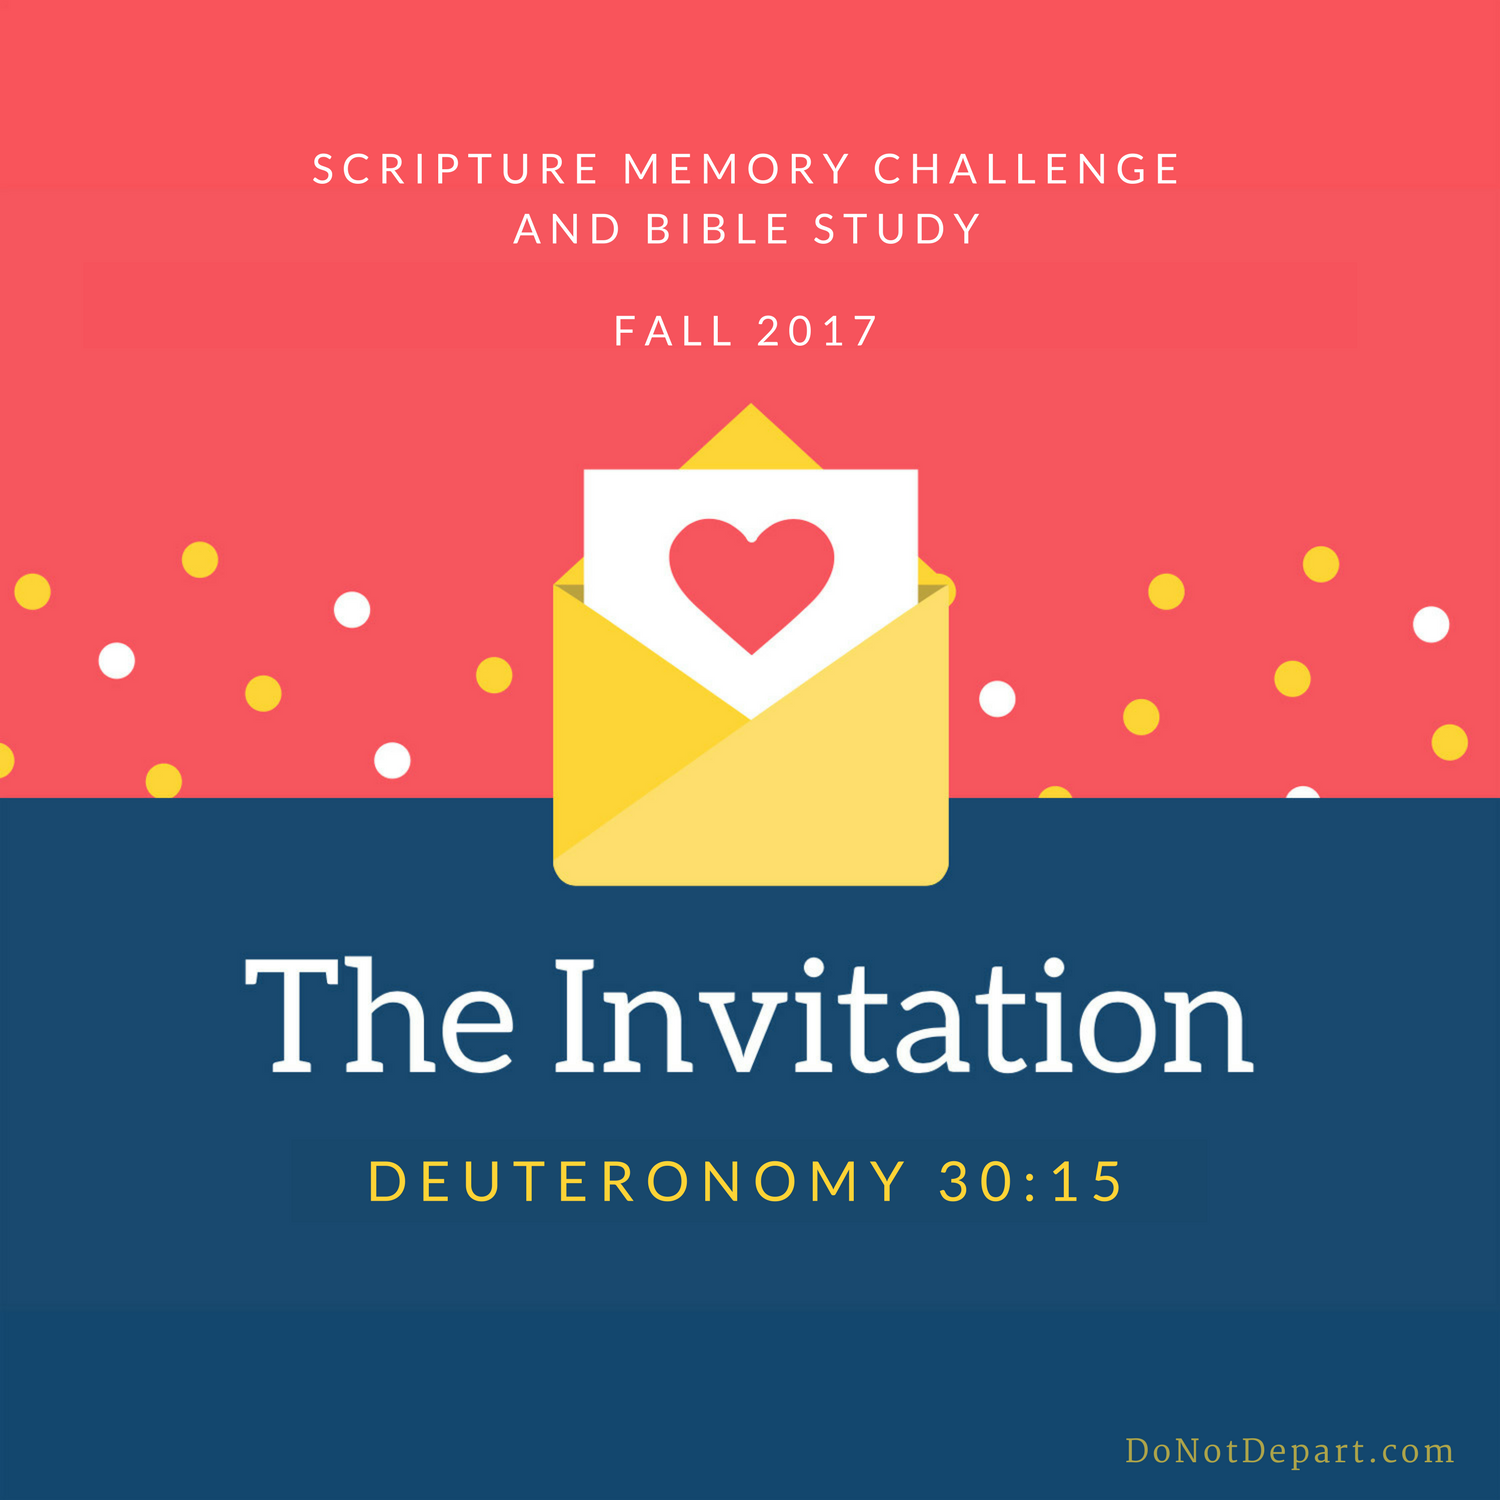 the invitation: printable bible study guide for deuteronomy 30:15